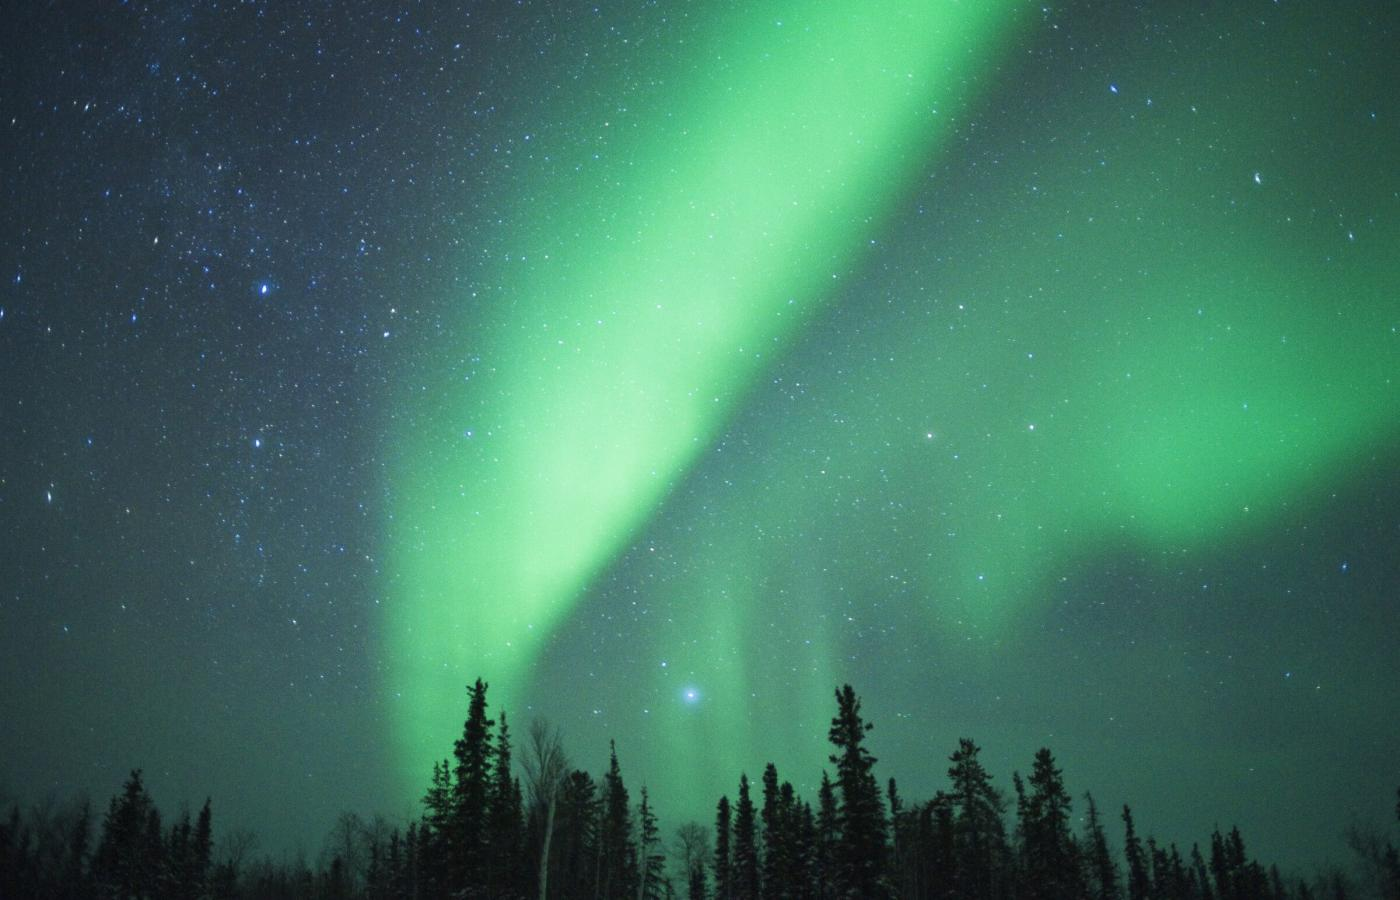 The Northern Lights blooming in the Northwest Territories, Canada